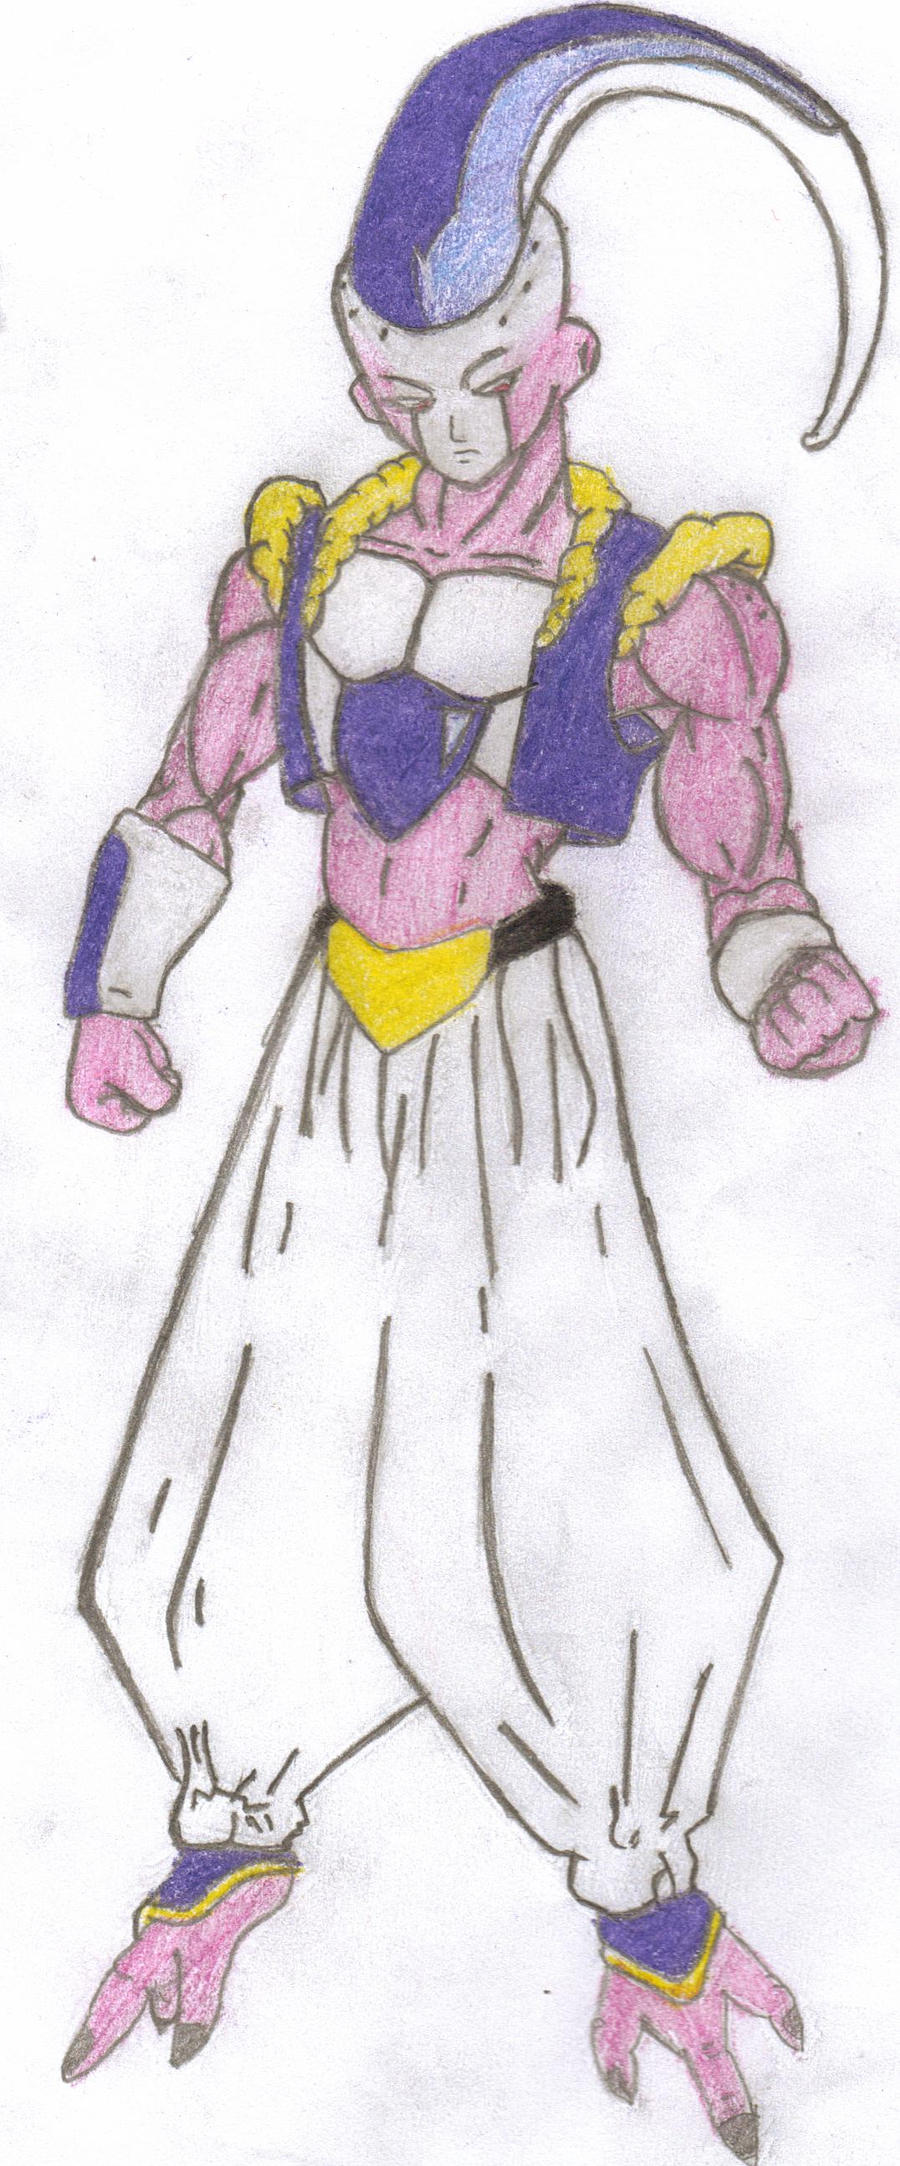 buu (frieza absorbed) by franciumisgerman on DeviantArt